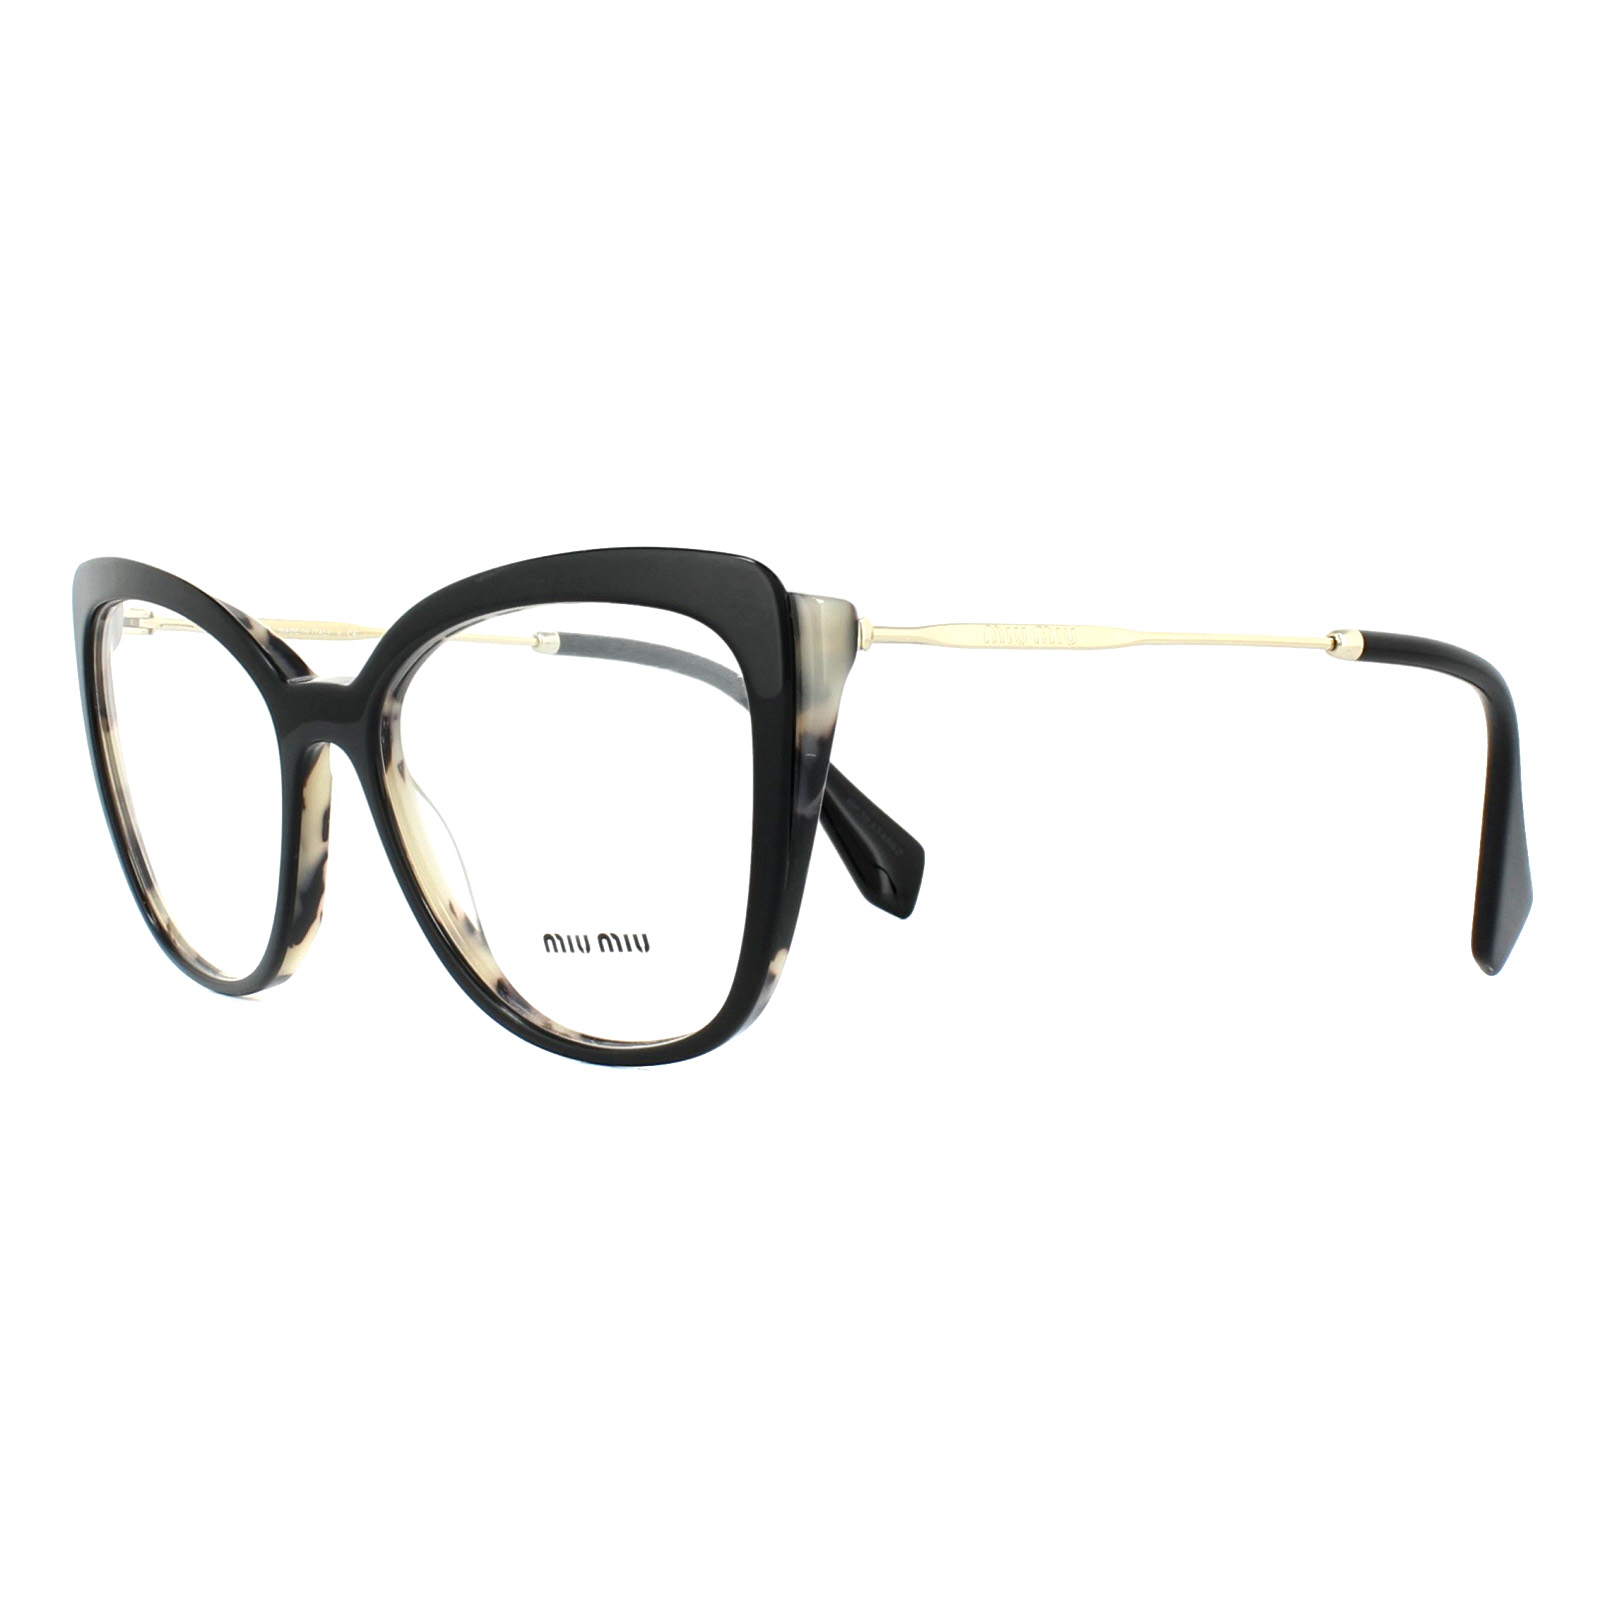 db9a8ef8a68e Cheap Miu Miu MU02QV Glasses Frames - Discounted Sunglasses